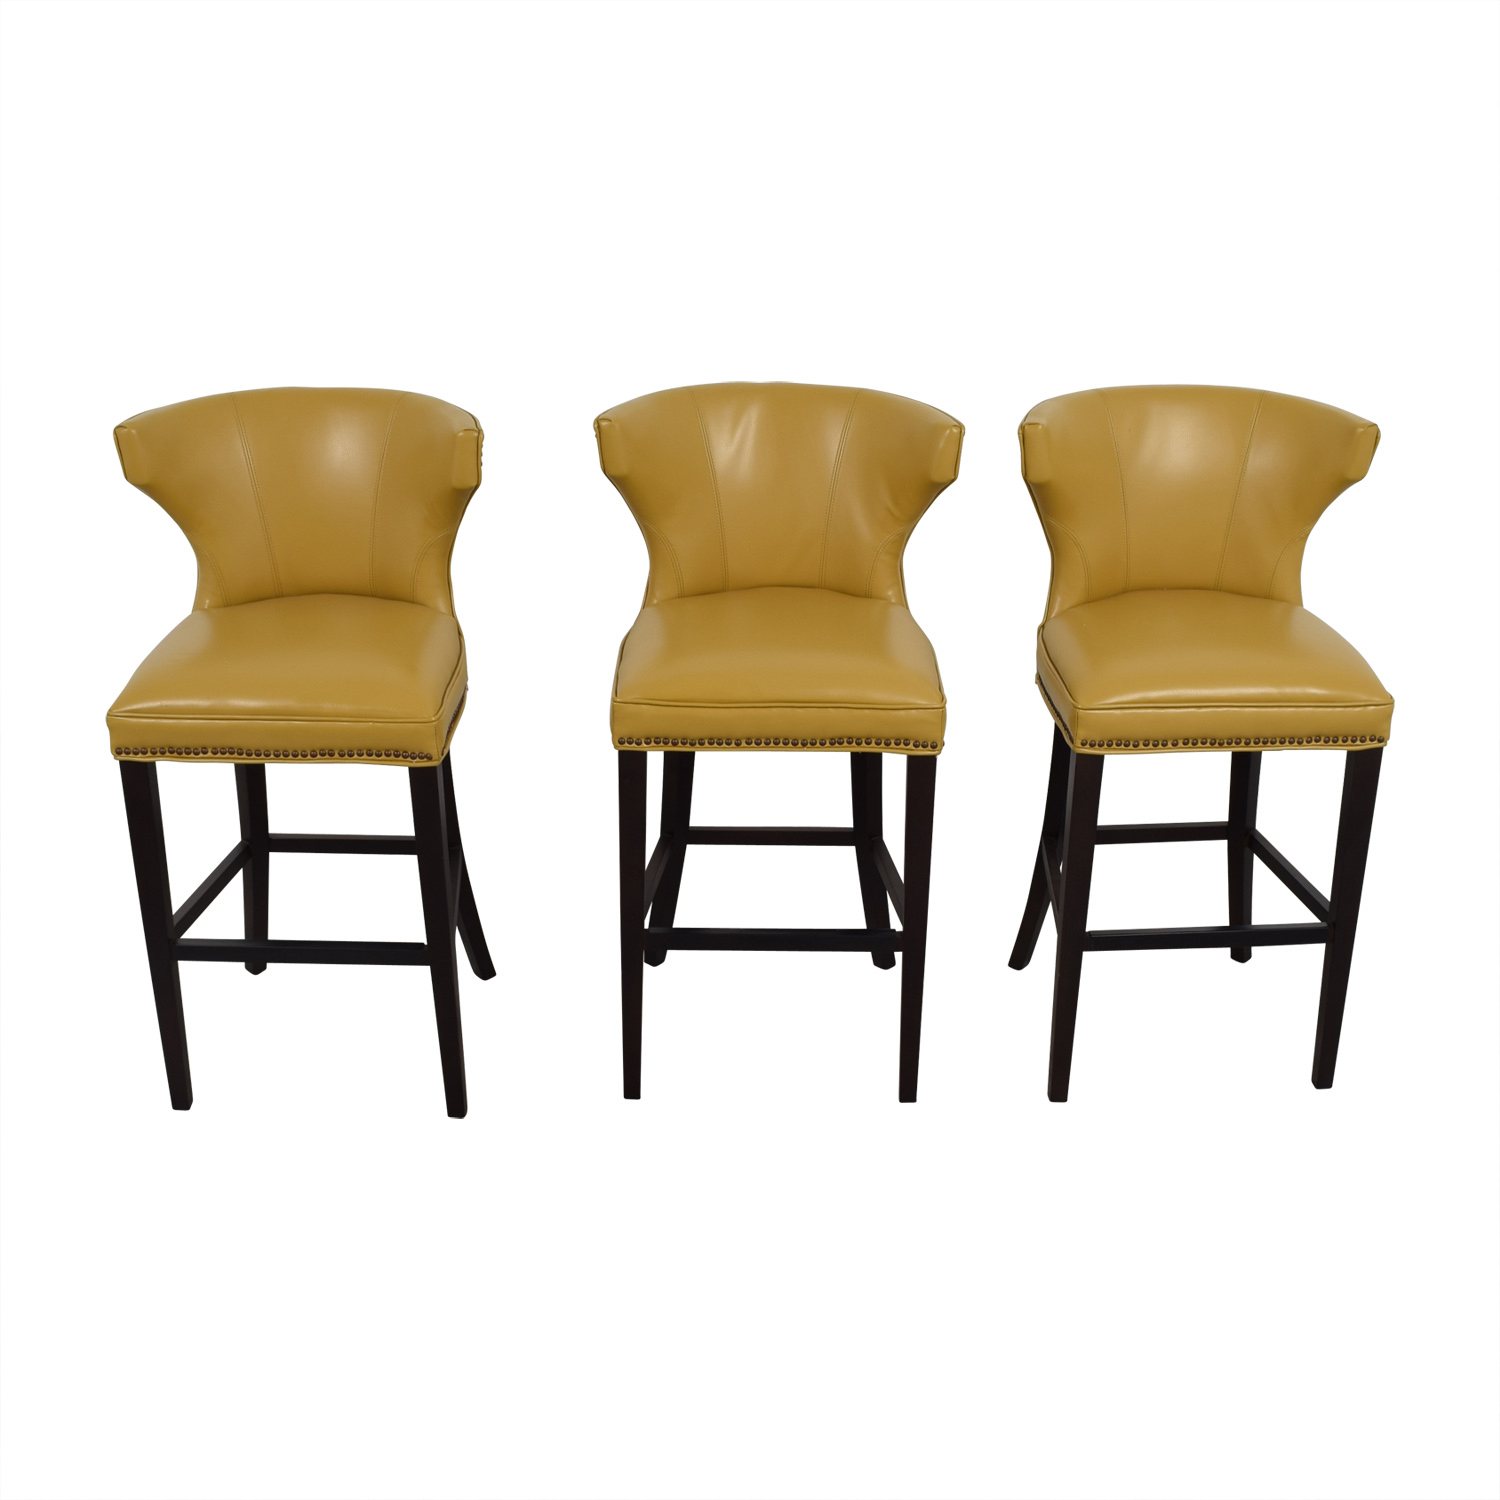 72% Off - Grandin Road Grandin Road Mustard Yellow Bar Stools / Chairs within Grandin Leather Sofa Chairs